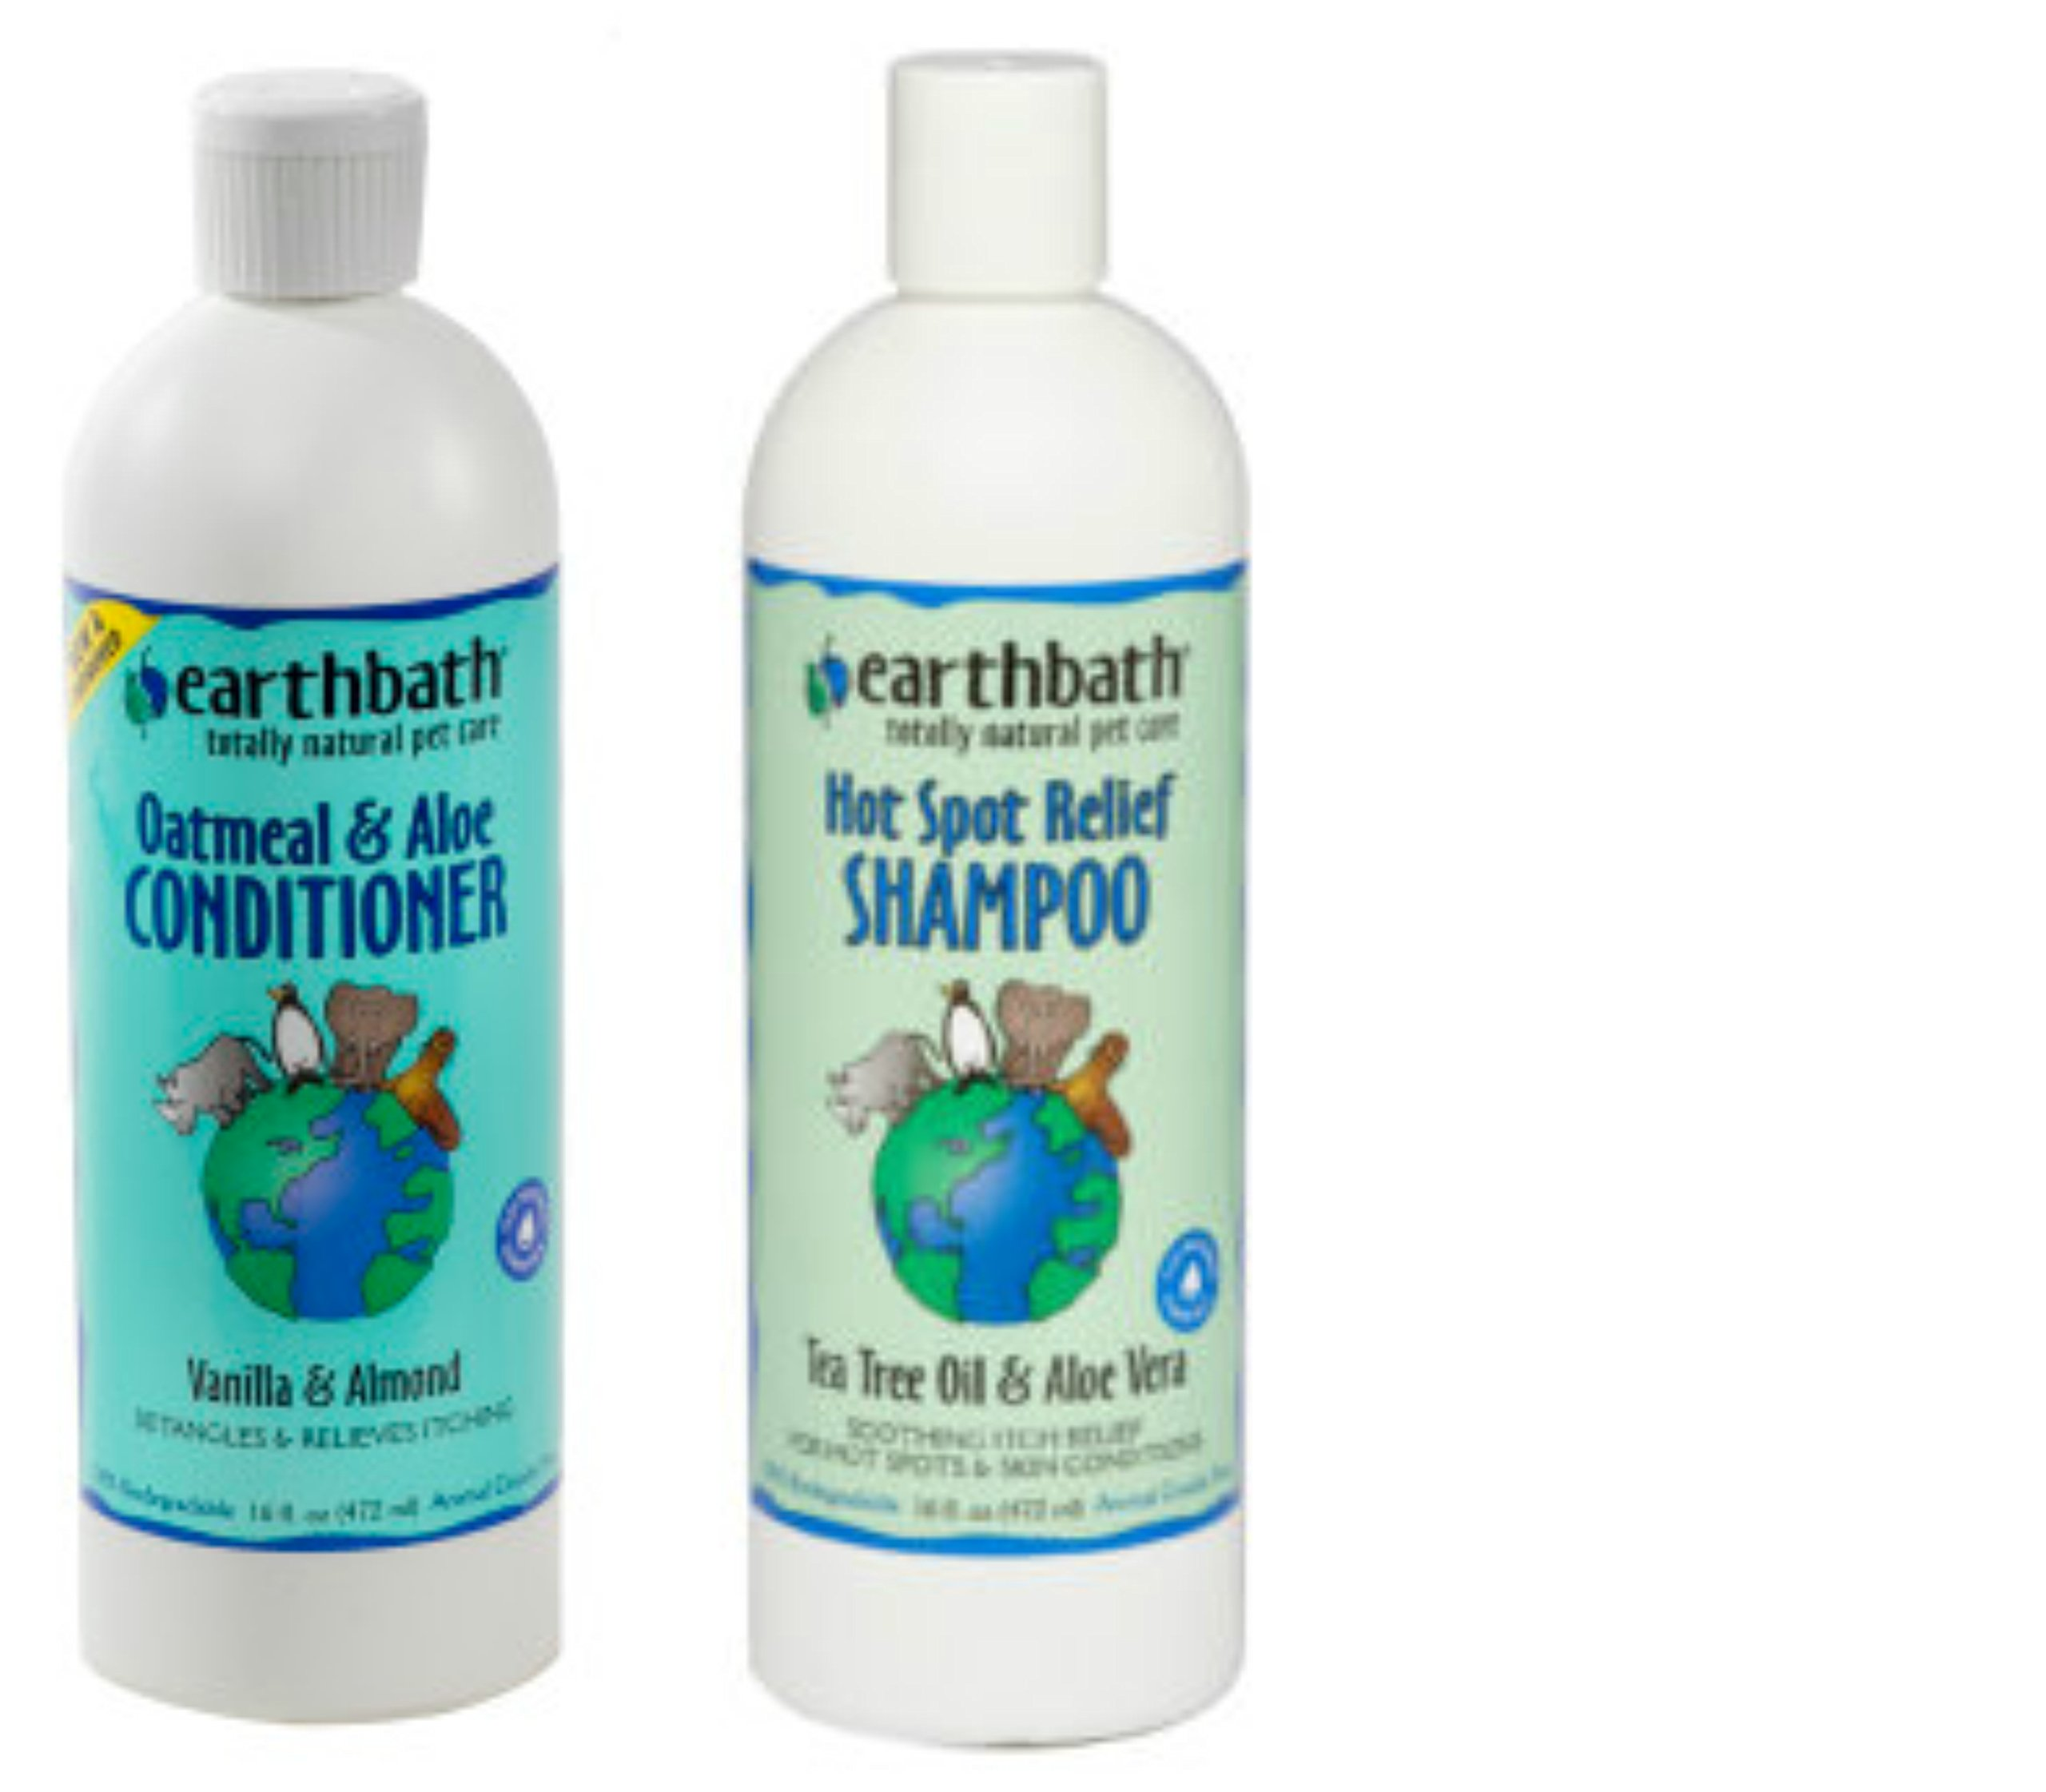 Earthbath Hot Spot Relief Tea Tree Oil and Aloe Vera Shampoo for Dogs and Cats, 16 oz, and Earthbath Oatmeal and Aloe Conditioner for Dogs and Cats, Vanilla and Almond Scent,16 oz